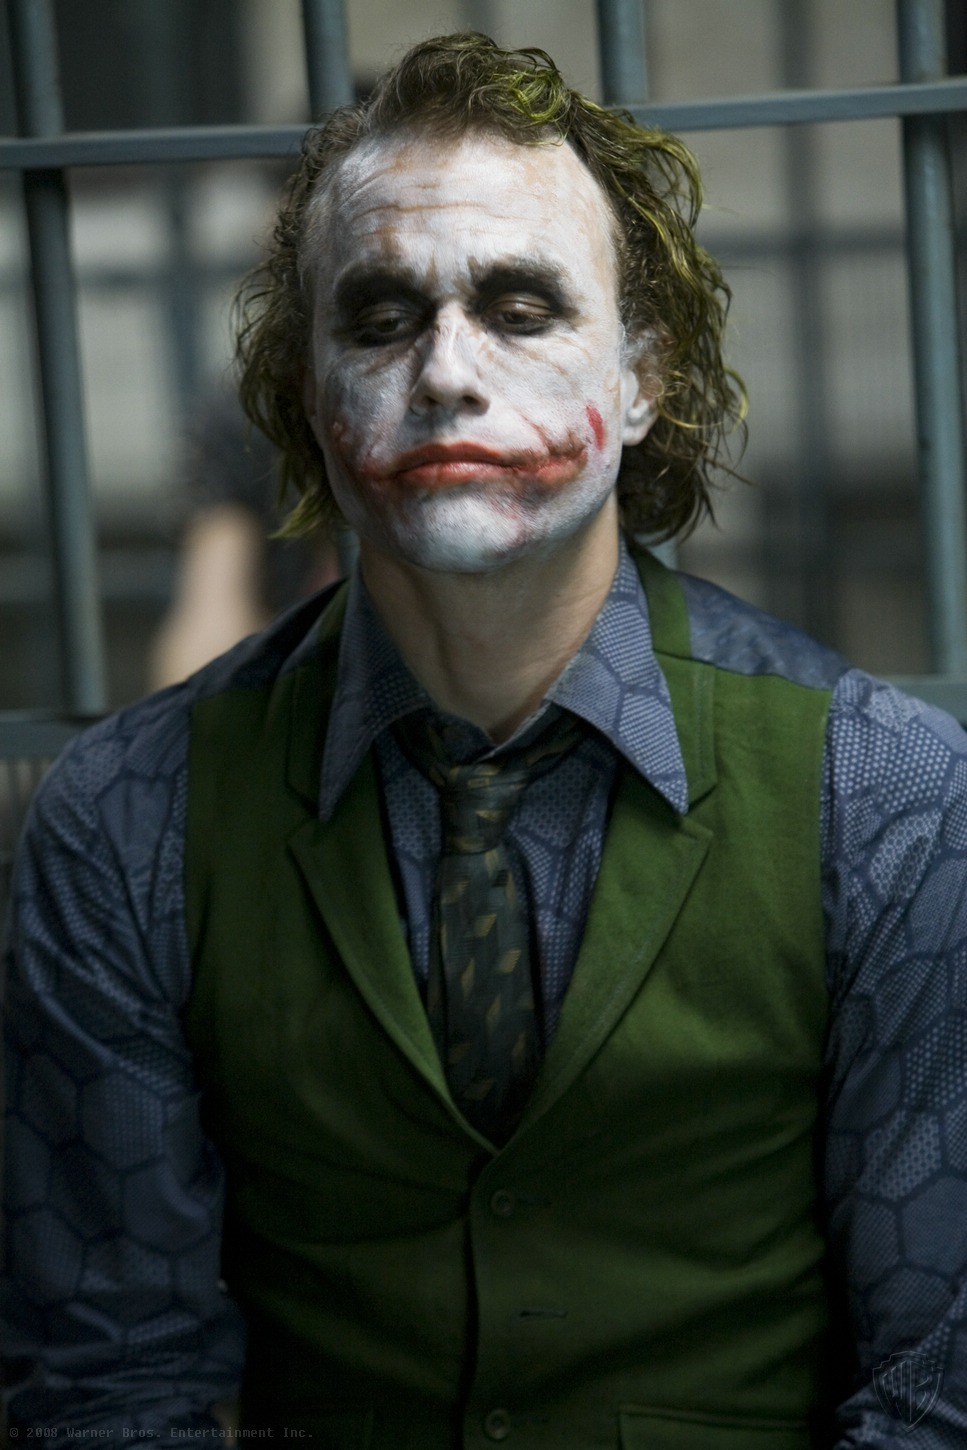 heath quotes 15 quotes from the joker - heath ledger: 'smile, because it confuses people  smile, because it's easier than explaining what is killing you inside', 'as you  know.